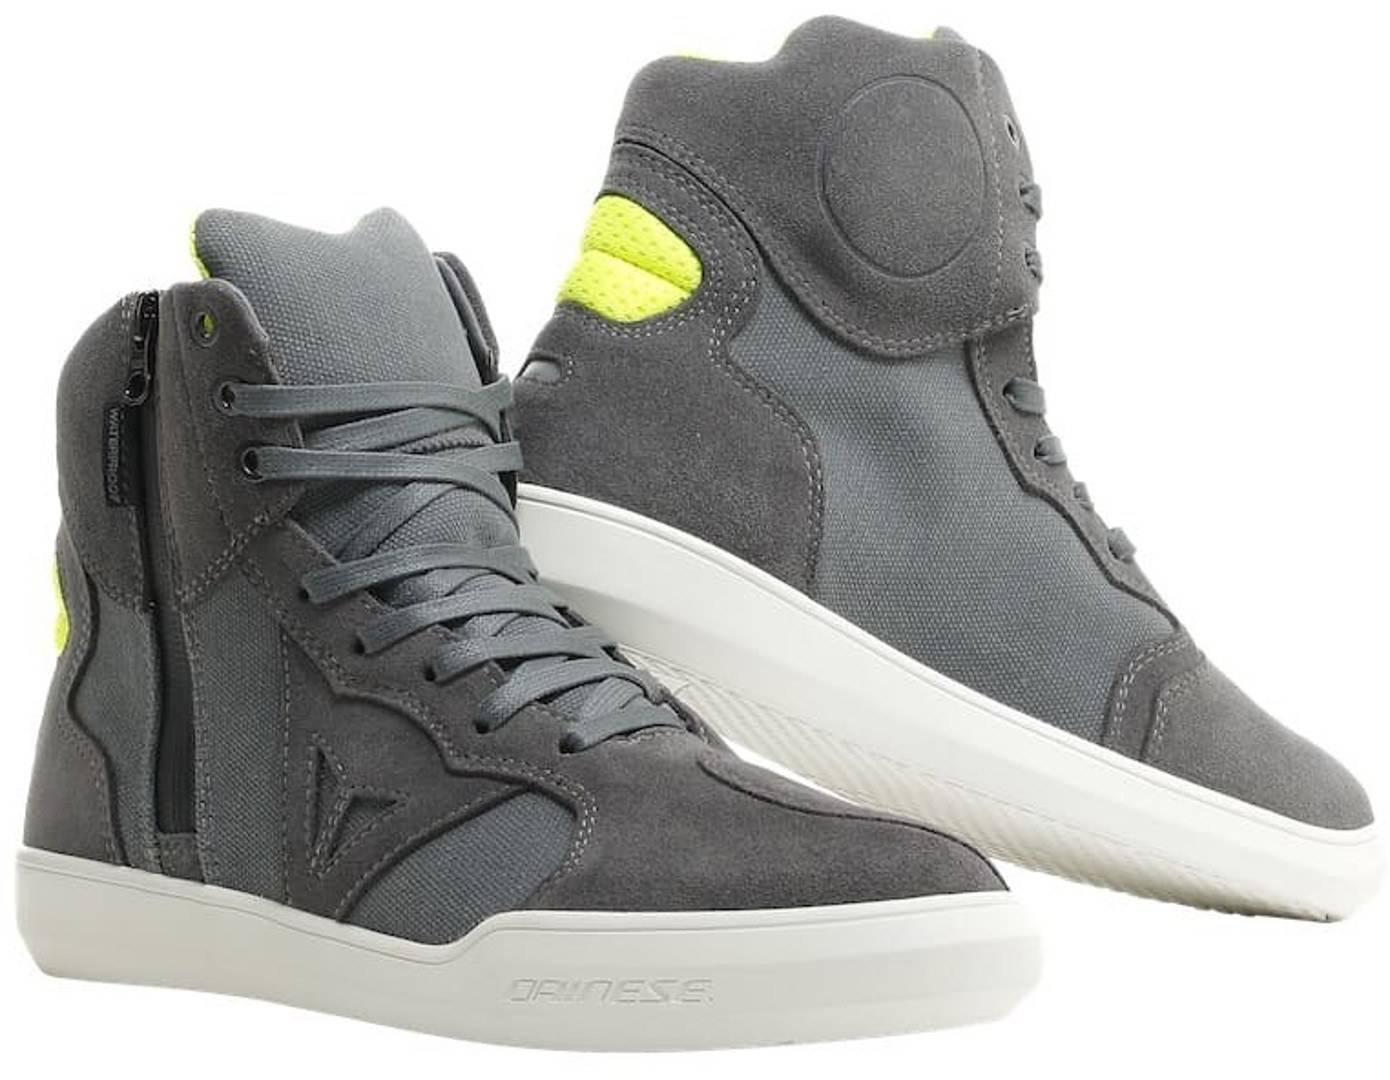 Dainese Metropolis D-WP Motorcycle Shoes Grey Yellow 45